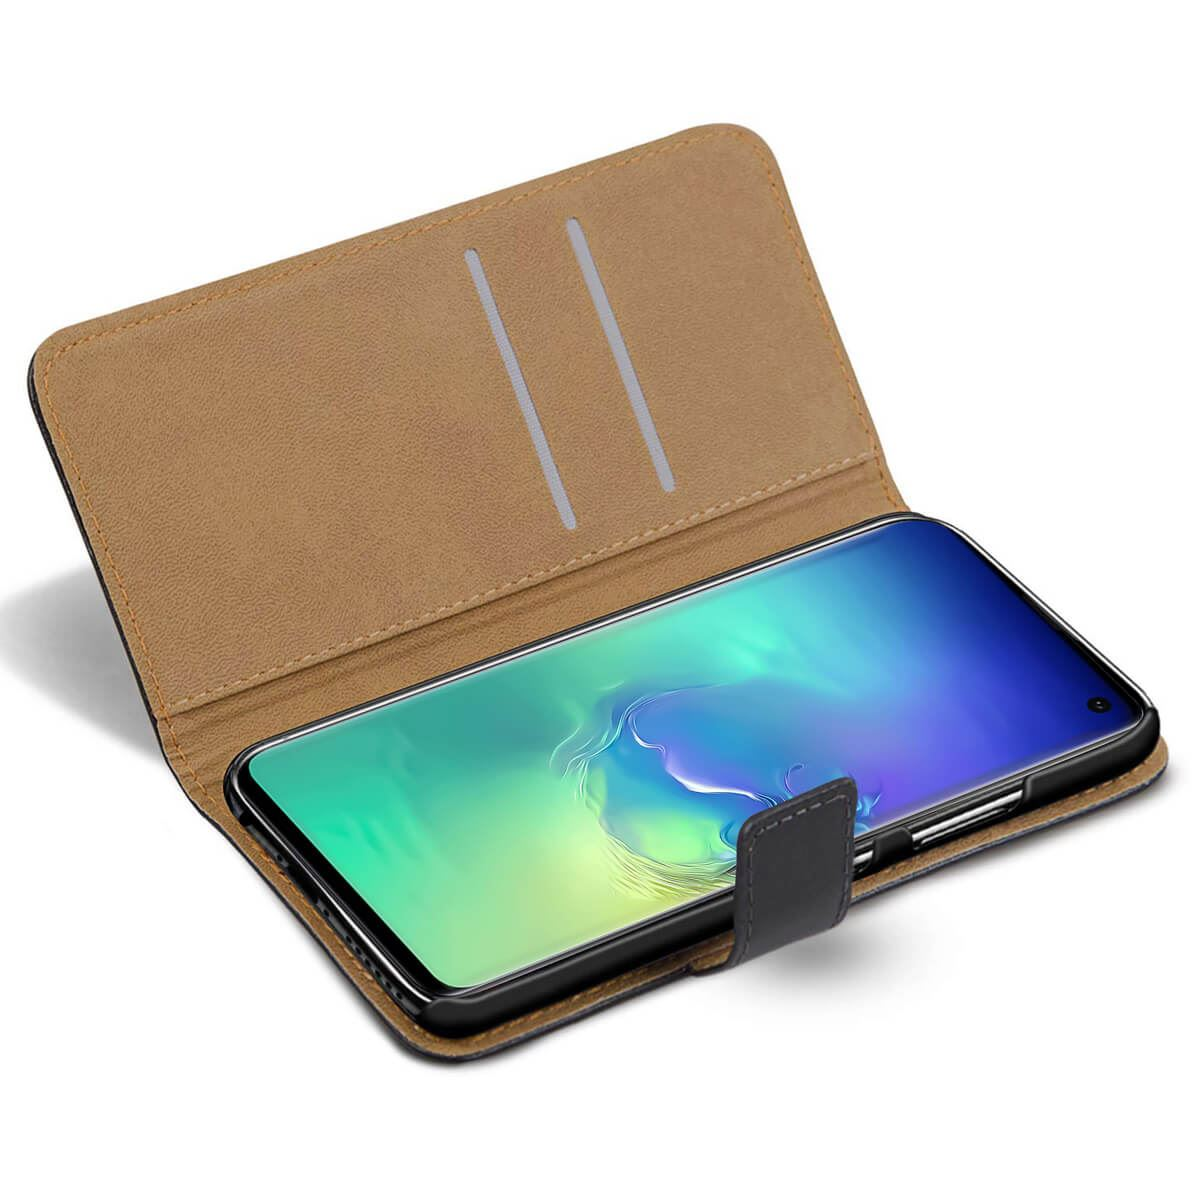 Magnetic-Flip-Wallet-Case-For-Samsung-Galaxy-S10-Plus-S9-S8-A50-Leather-Cover thumbnail 5